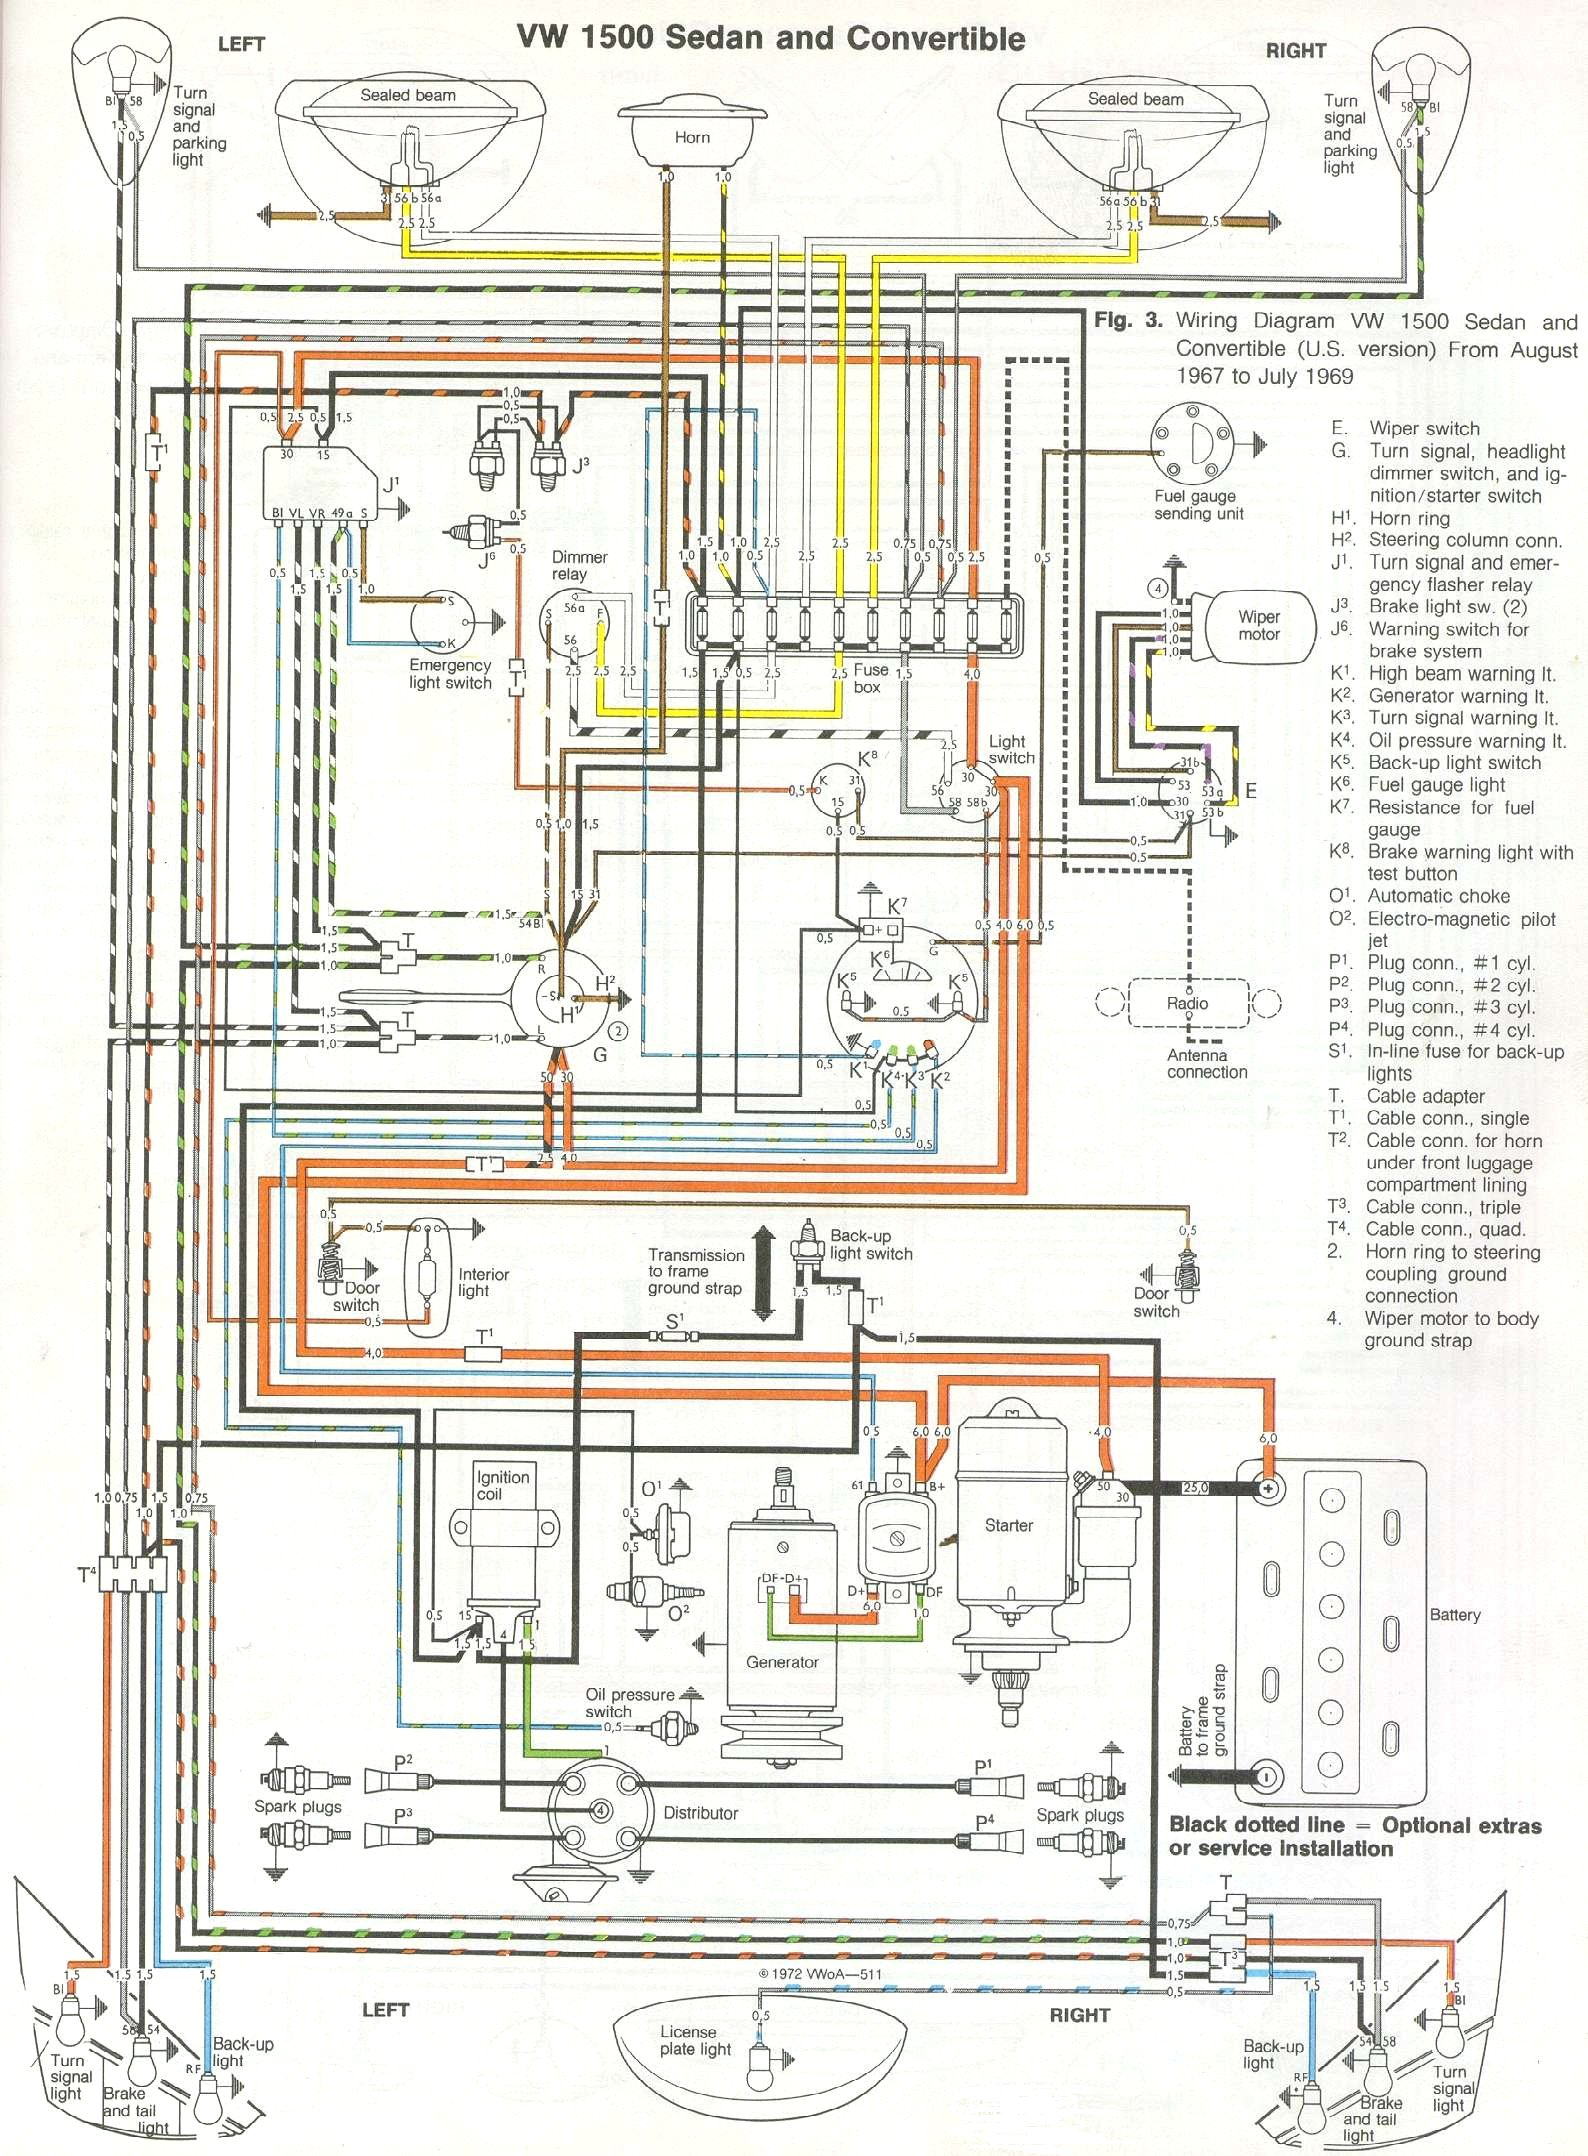 thesamba com type 1 wiring diagrams rh thesamba com 1973 vw bus wiring diagram 1973 vw thing wiring diagram